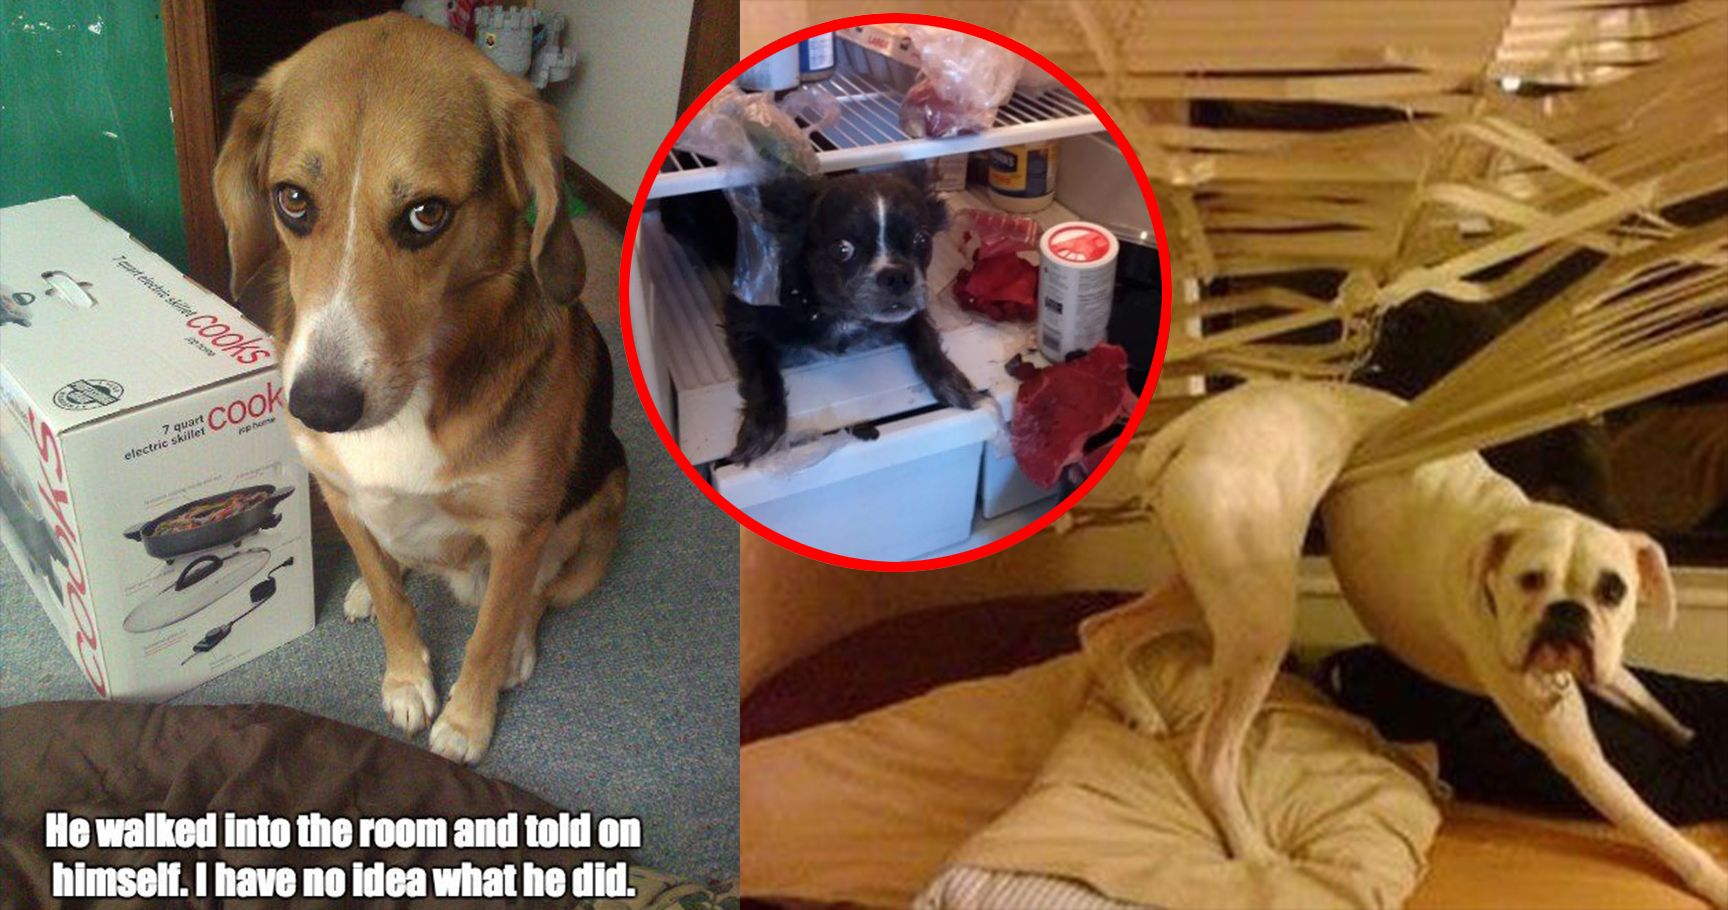 15 Hilarious Pet Messes That Are So Funny Their Owners Can't Be Mad